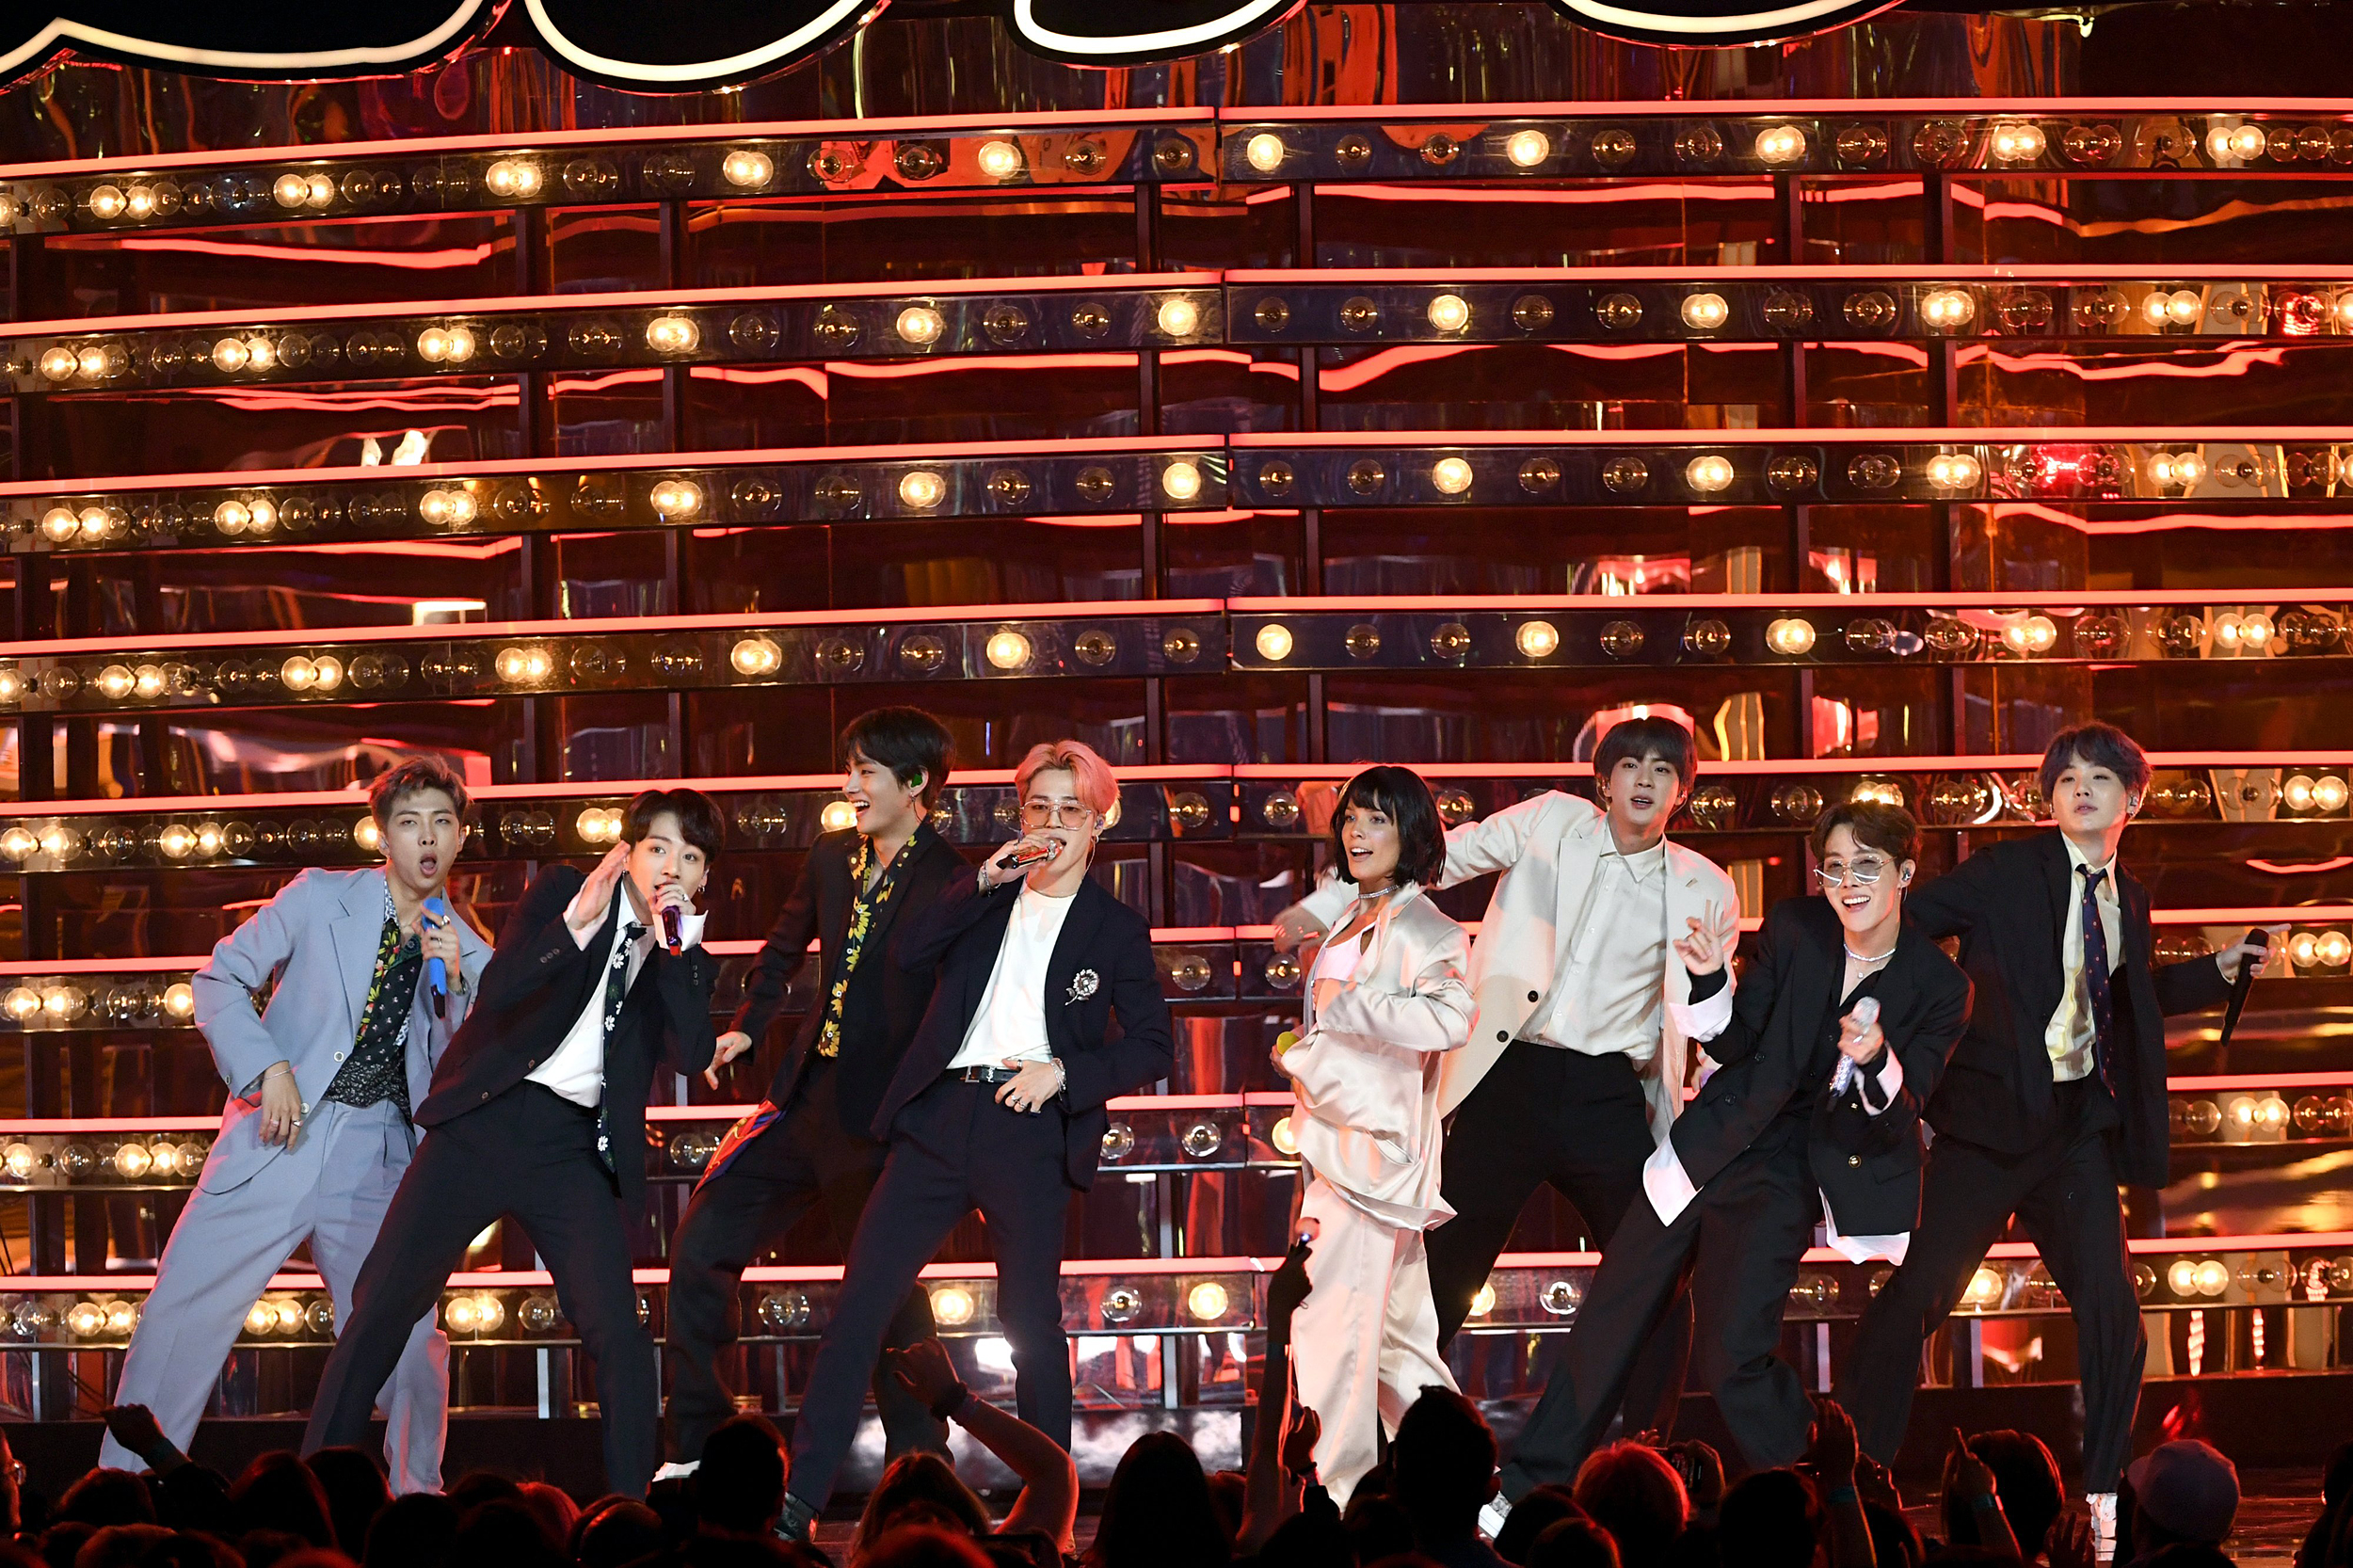 BTS used the 2019 Billboard Music Awards to showcase K-pop's